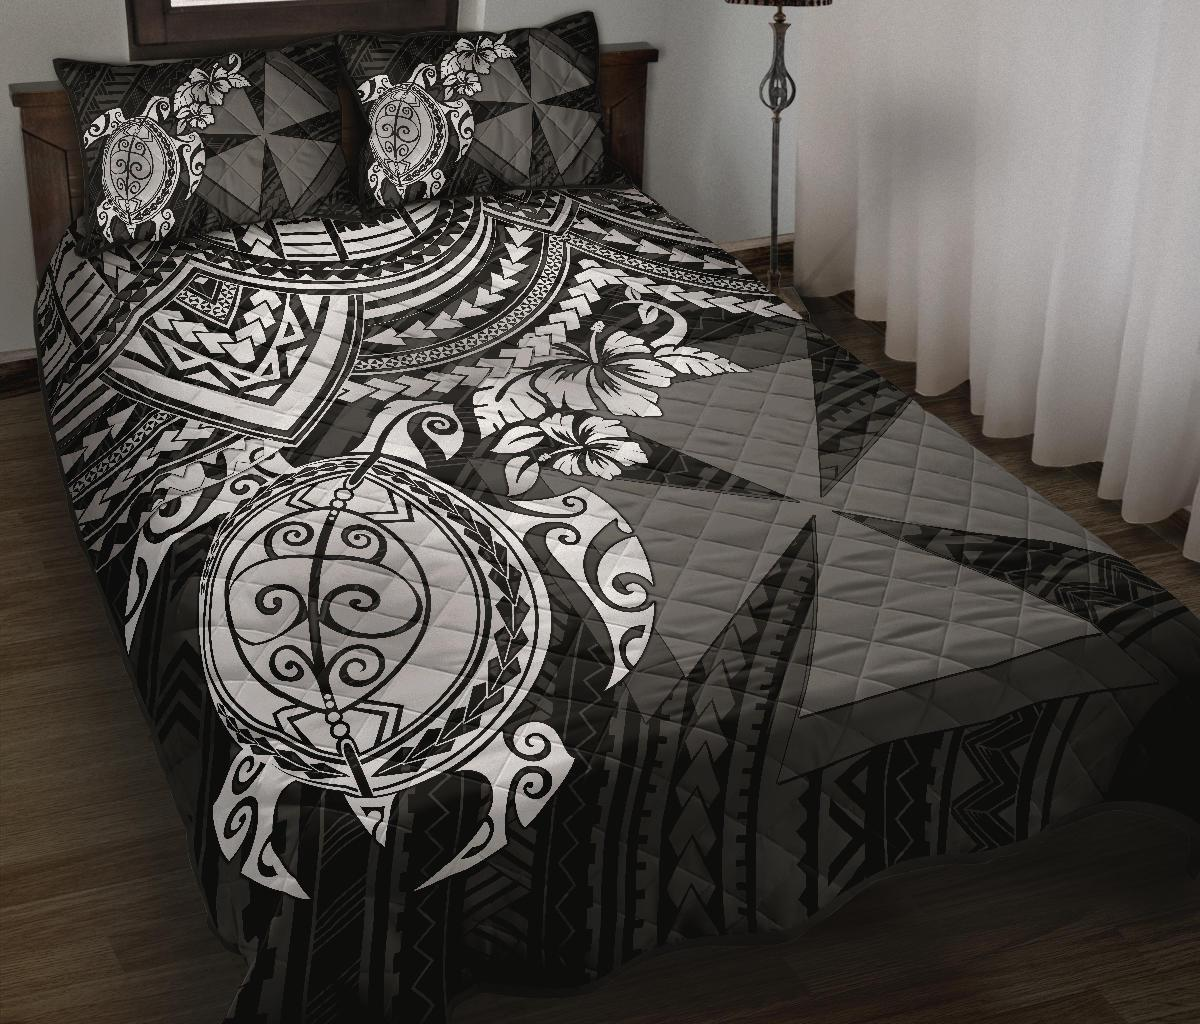 Wallis and Futuna Polynesian Quilt Bed Set - White Turtle - BN1518